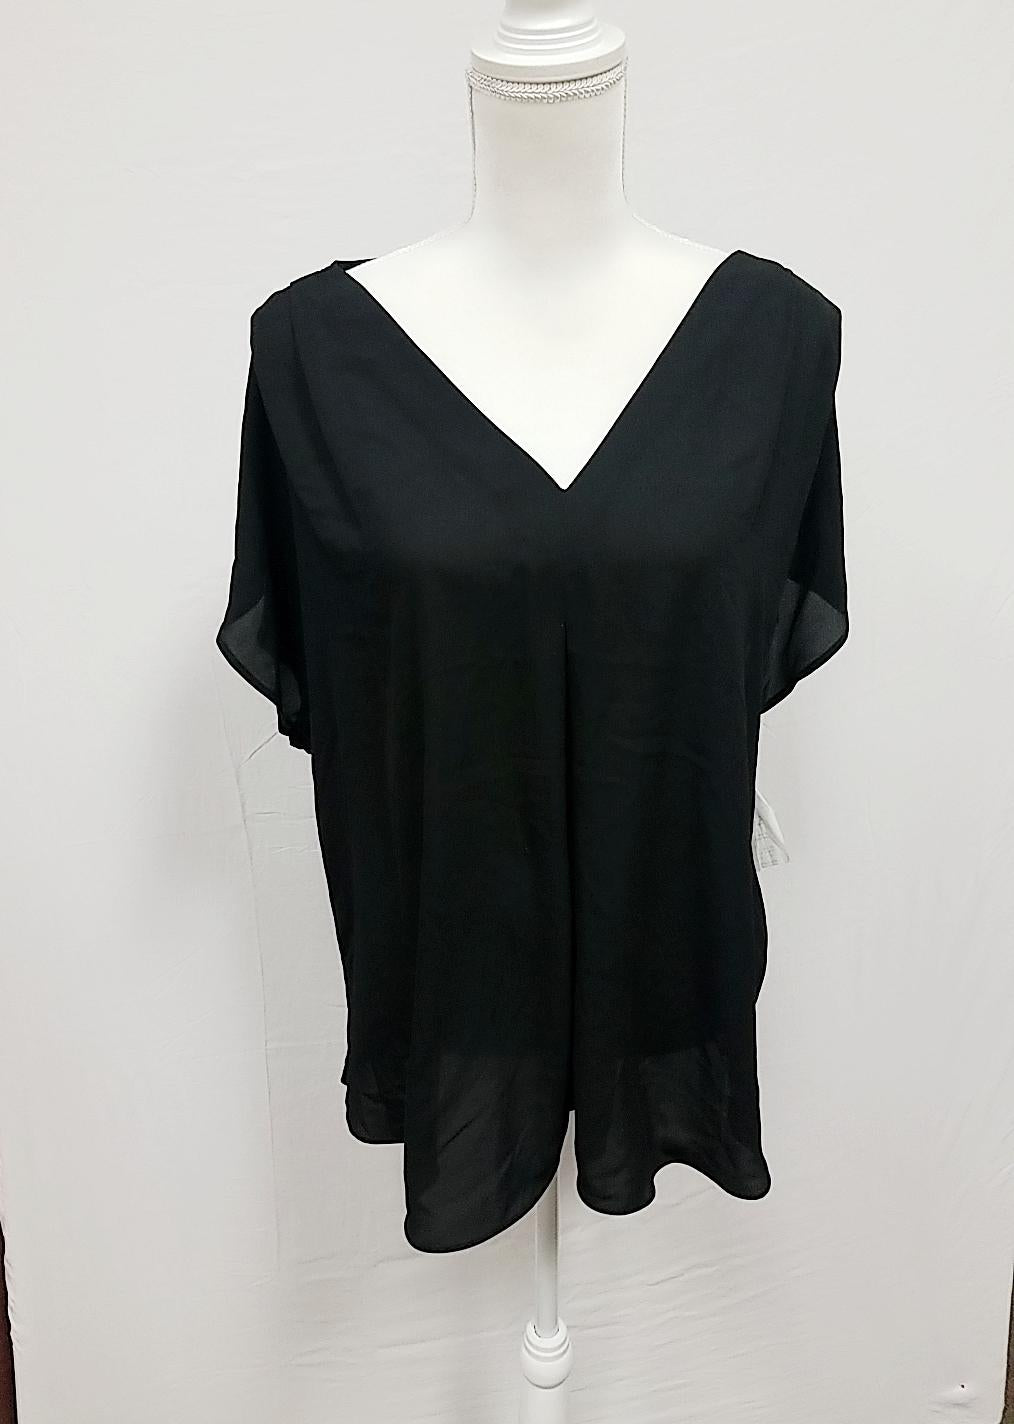 International Concepts Black Sheer Blouse 3X-NEW